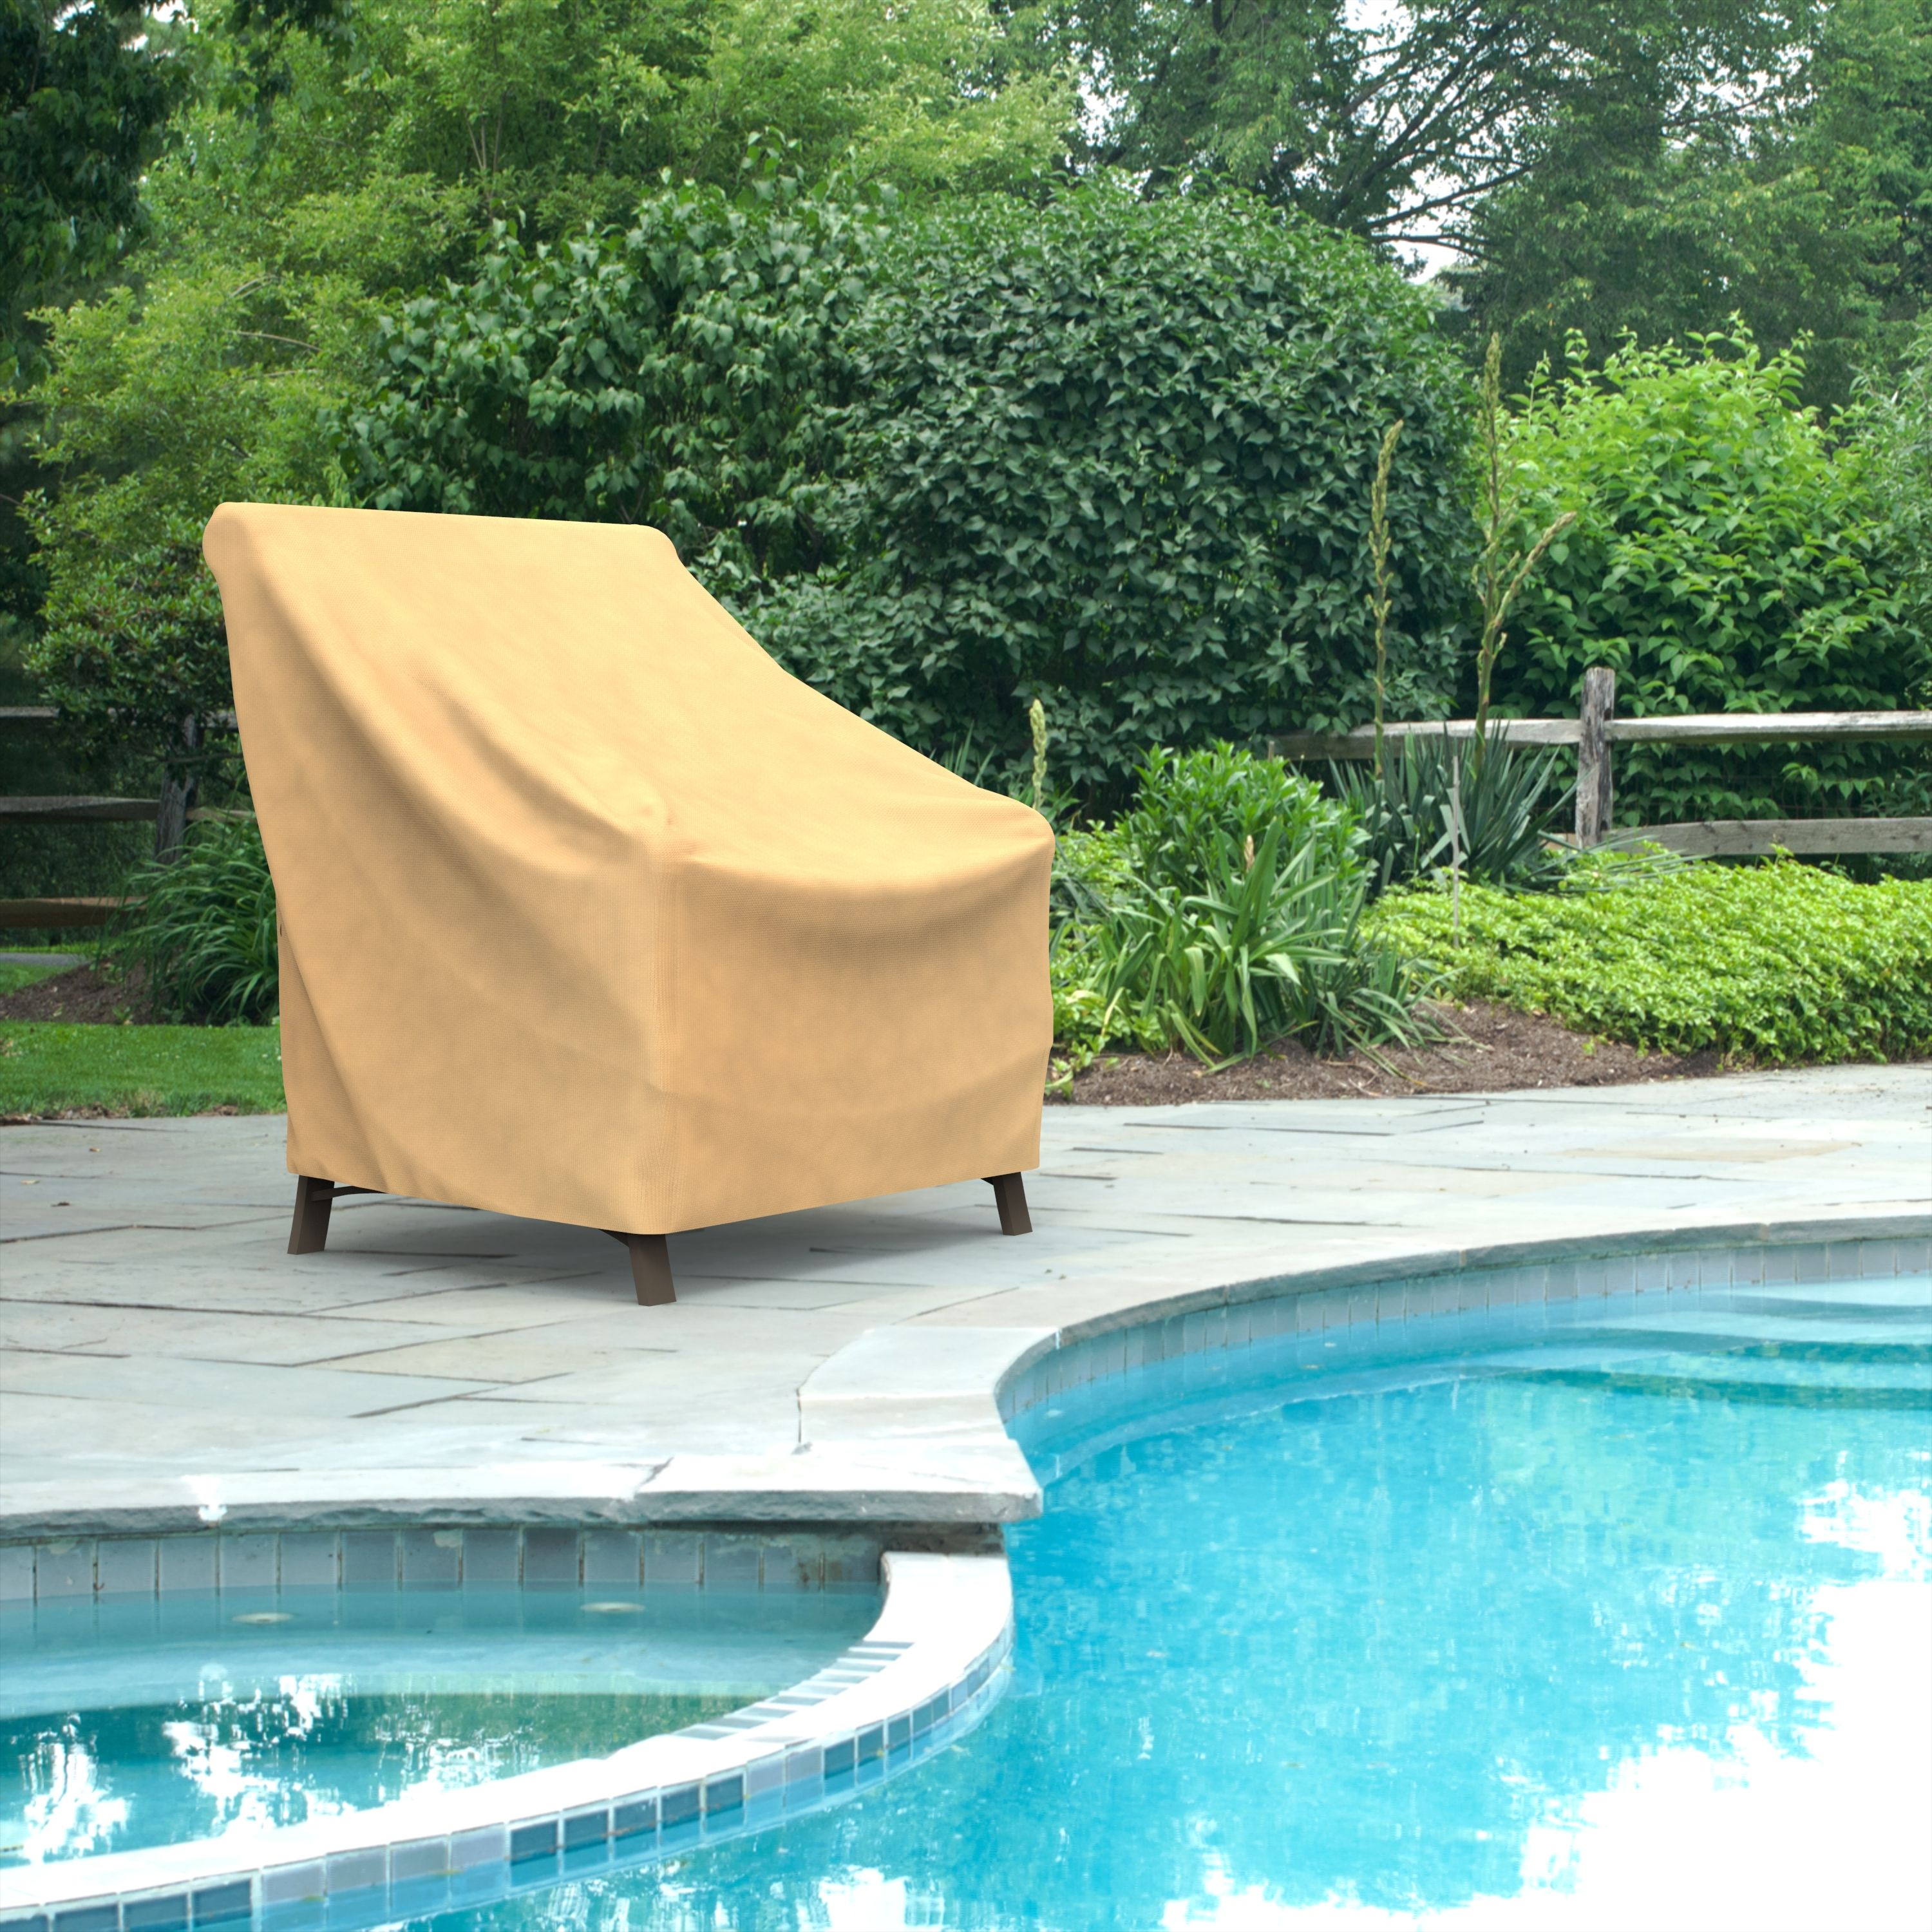 Budge Small Nutmeg Patio Outdoor Chair Cover, All-Seasons